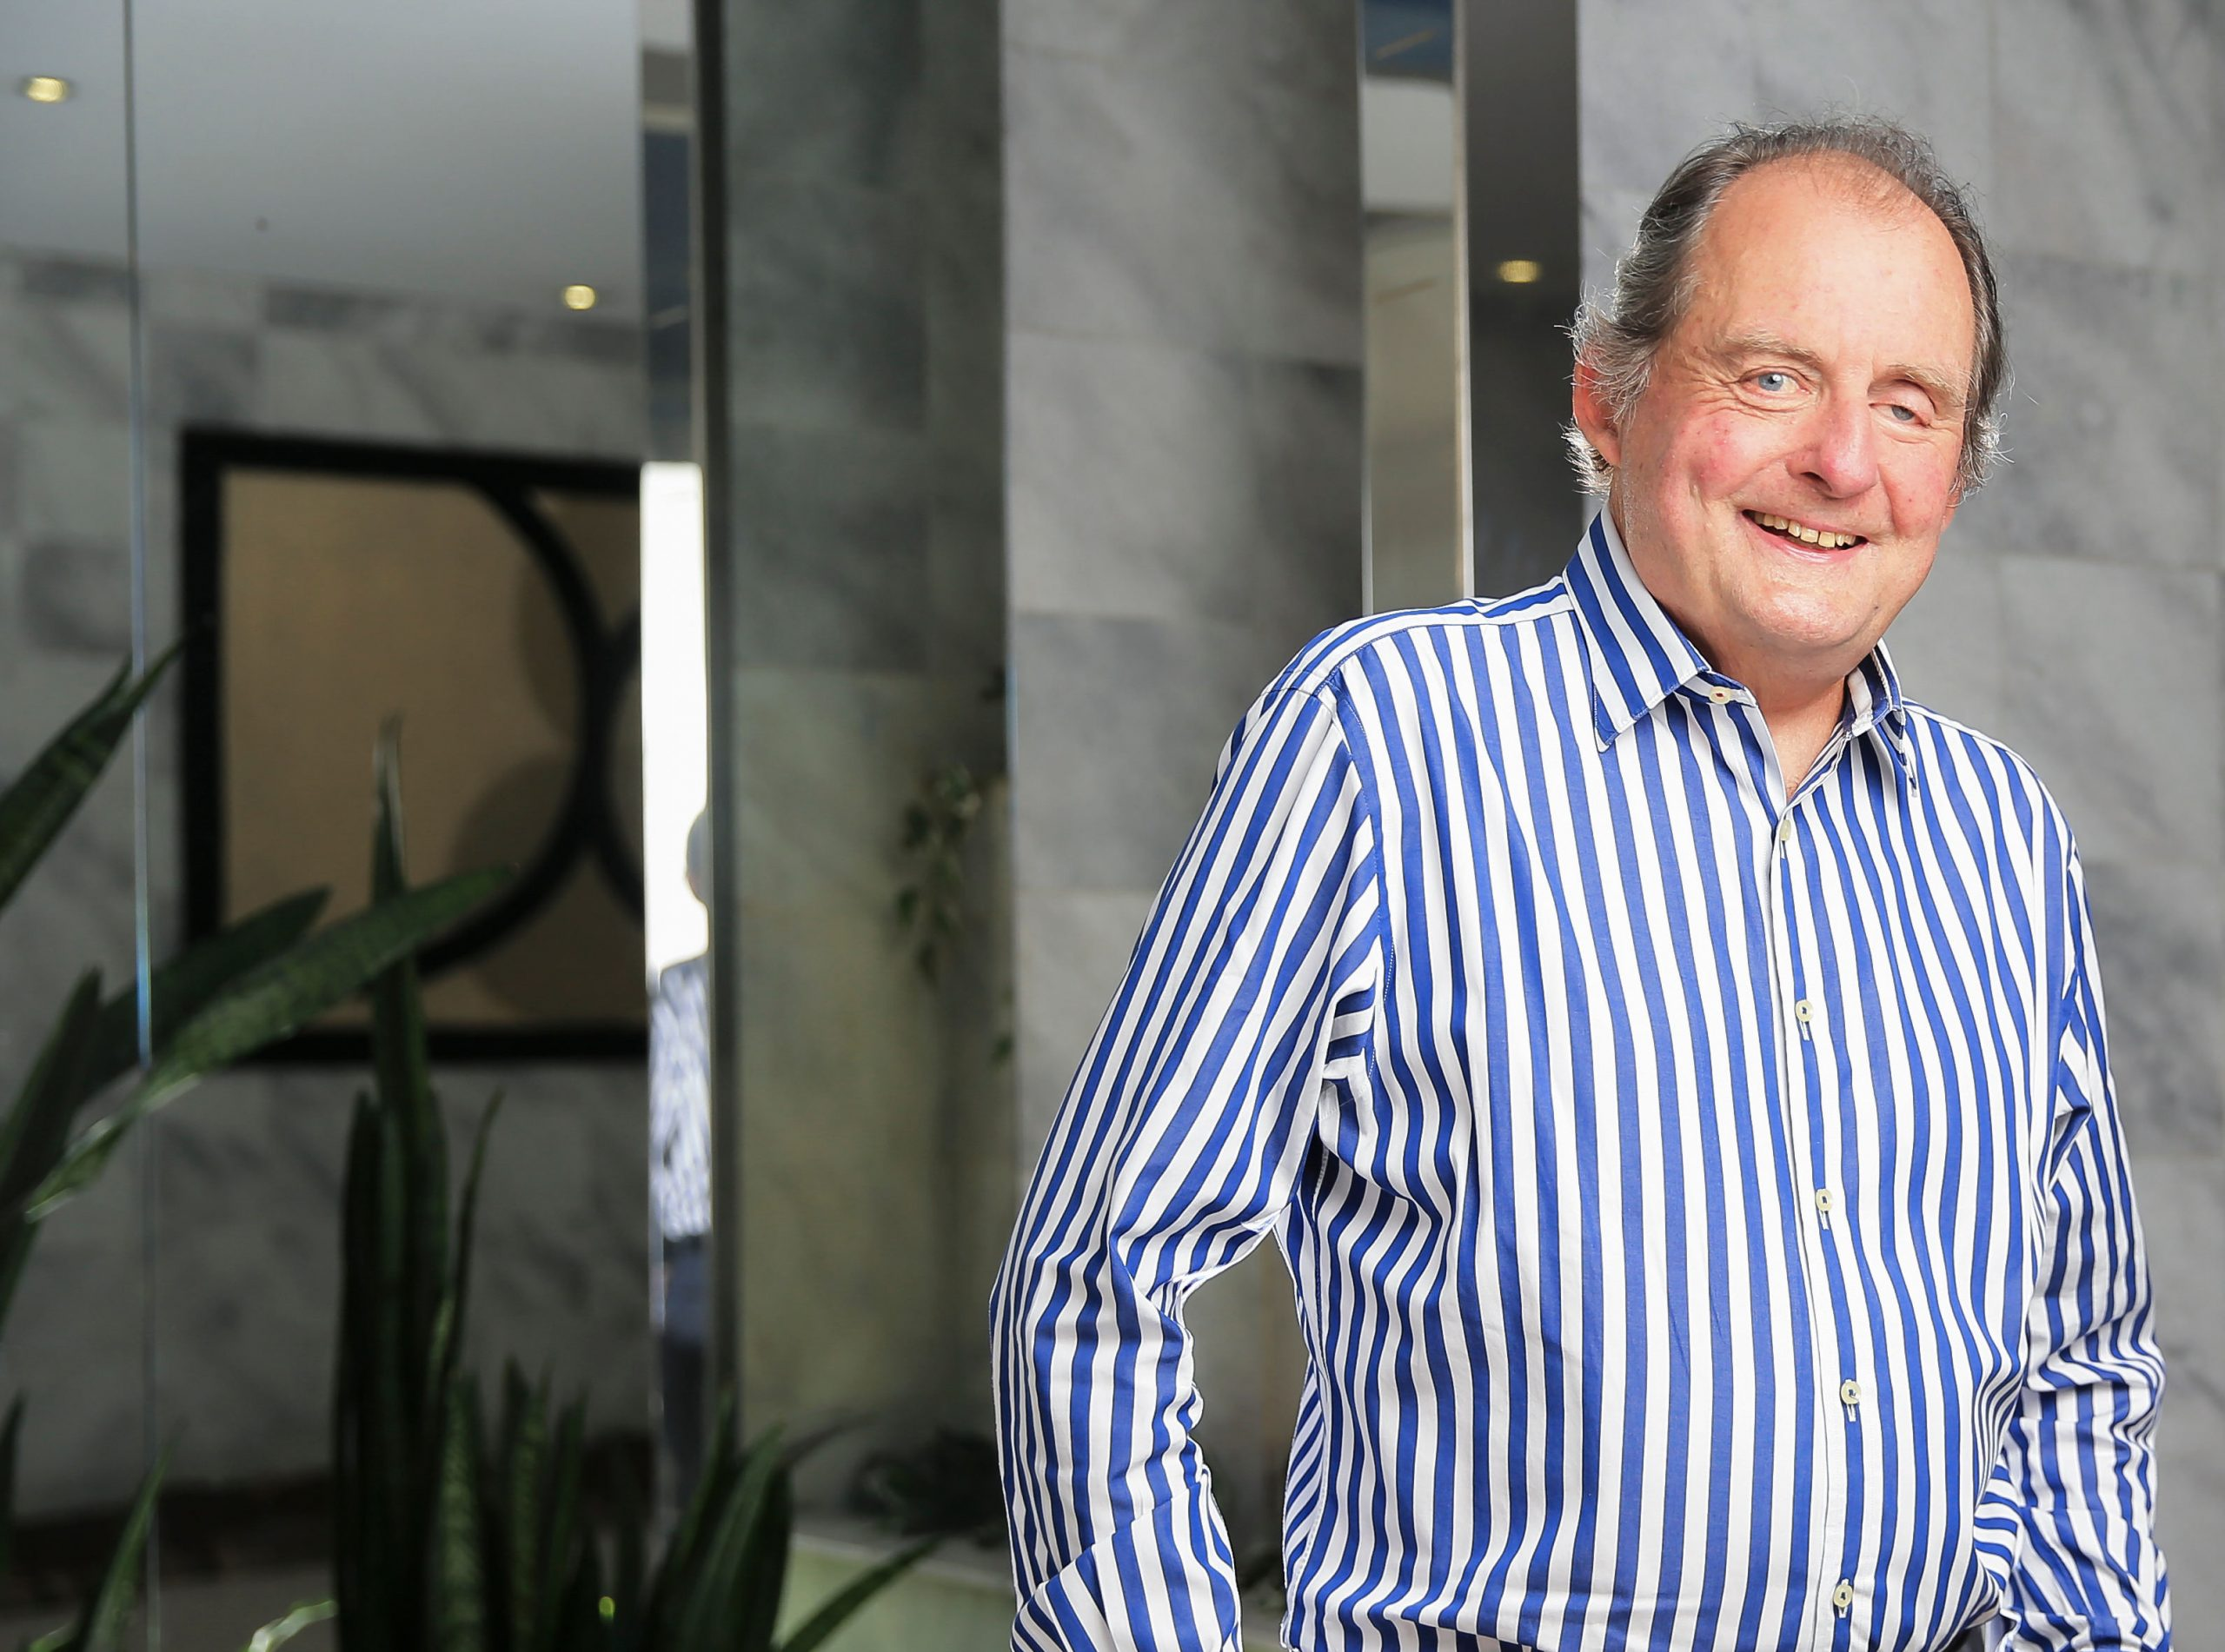 Cancer-survivor John Fordham, pictured, has teamed up with the doctor who saved him, professor Thomas Havas, to create the Head and Neck Cancer Foundation to improve research and diagnostics. Picture: Dylan Robinson